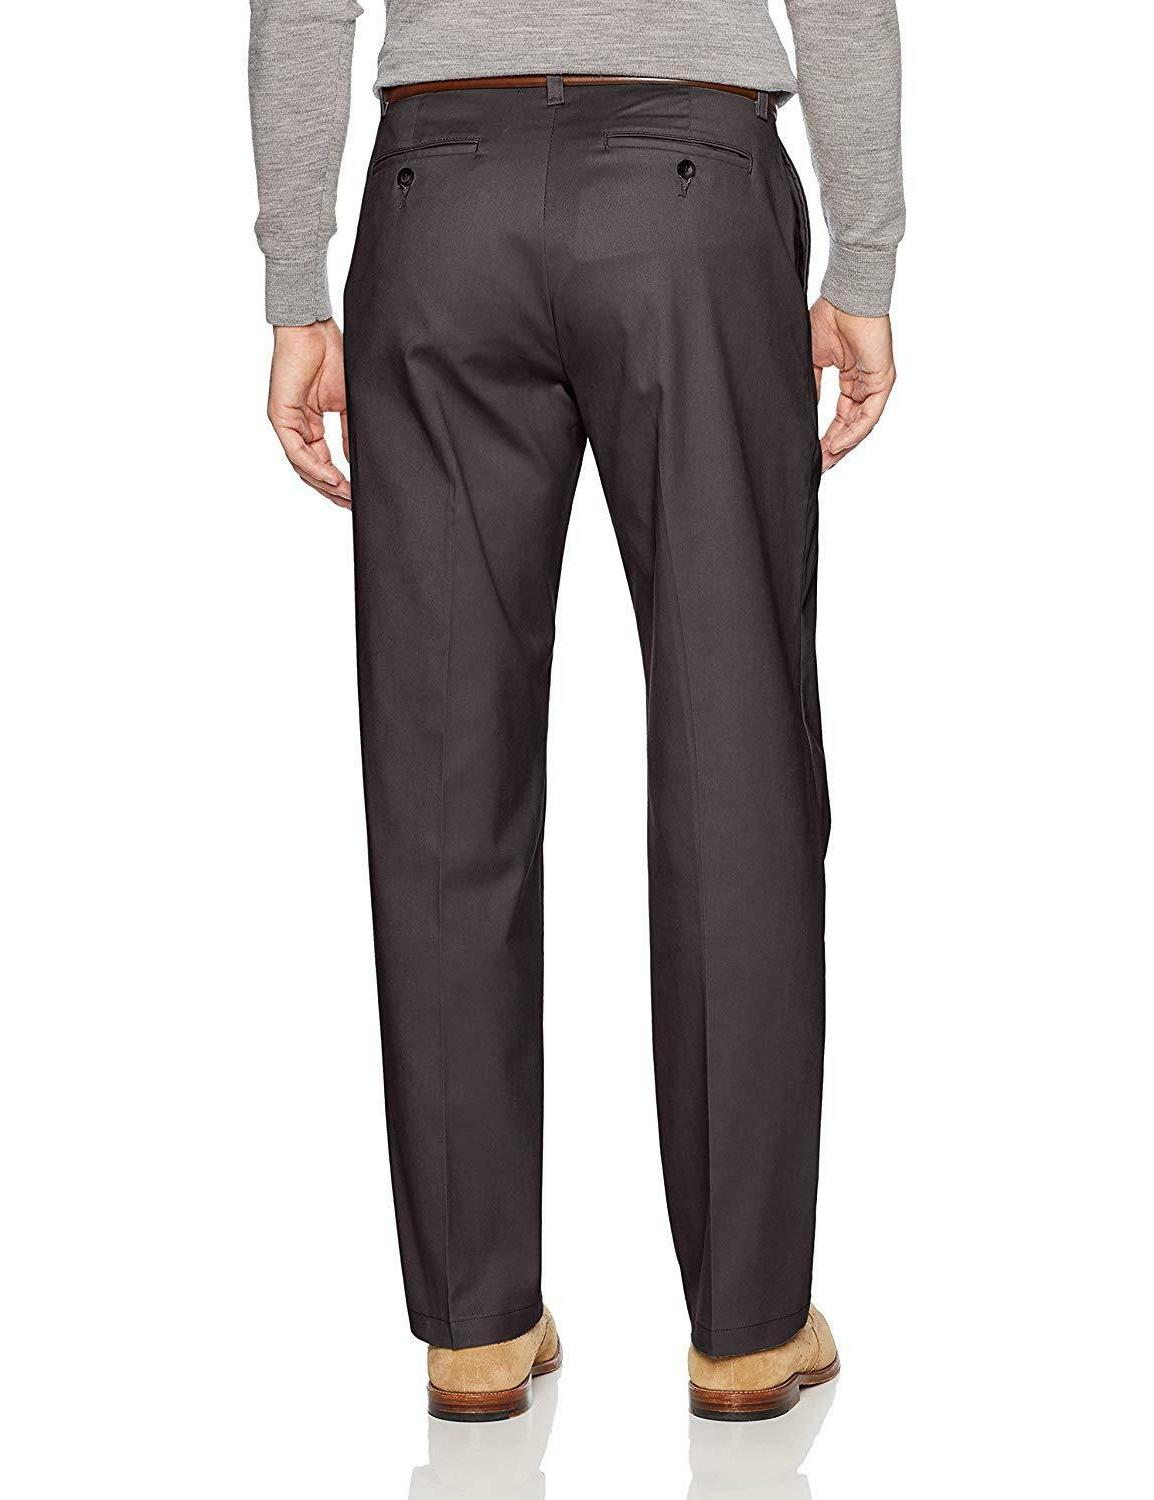 LEE Stretch Fit Flat Front